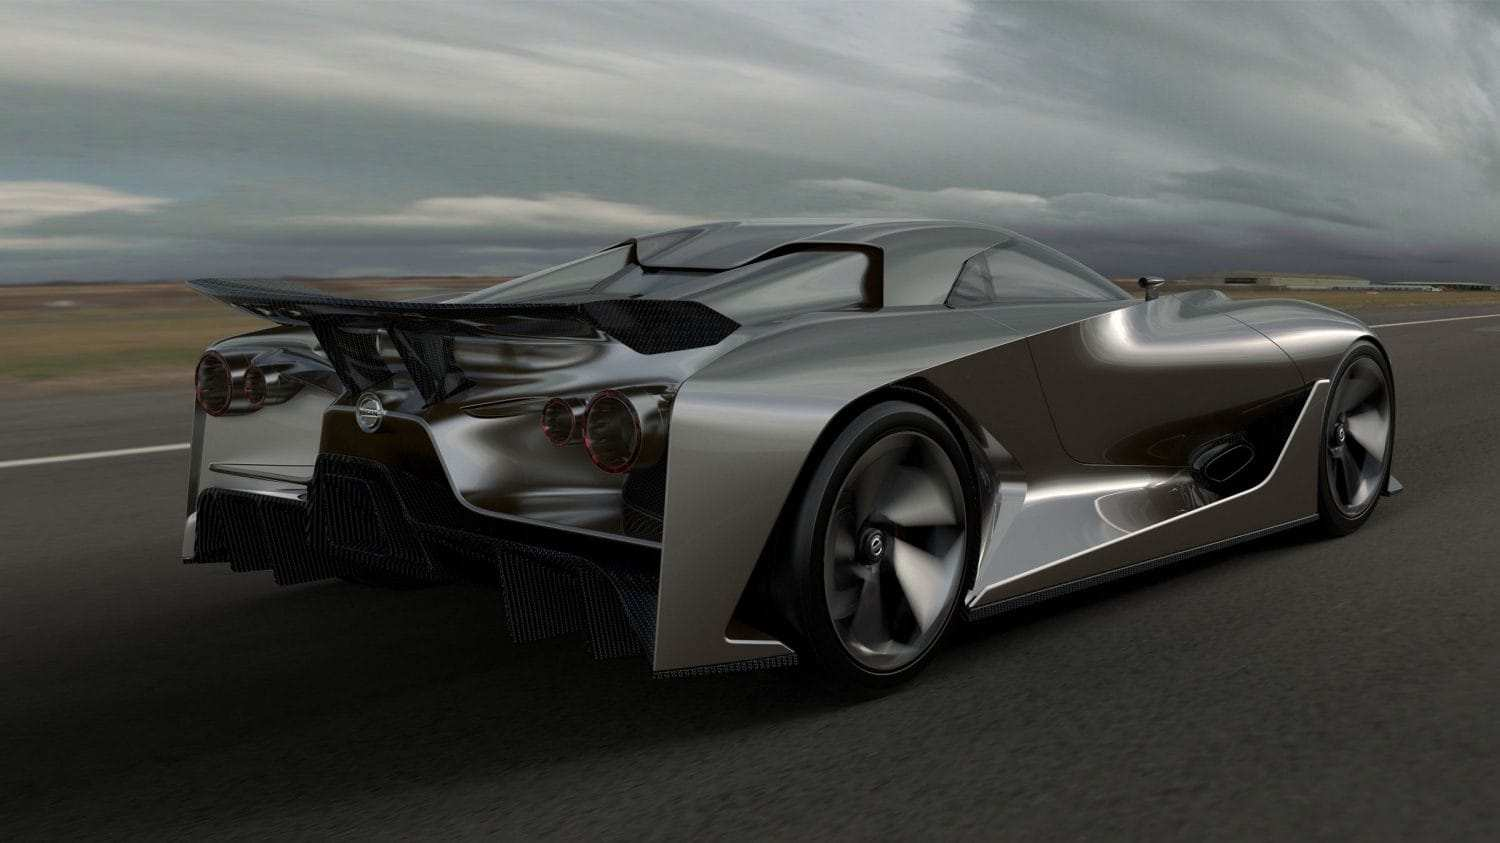 87 Concept of Nissan 2020 Vision Gt Images with Nissan 2020 Vision Gt